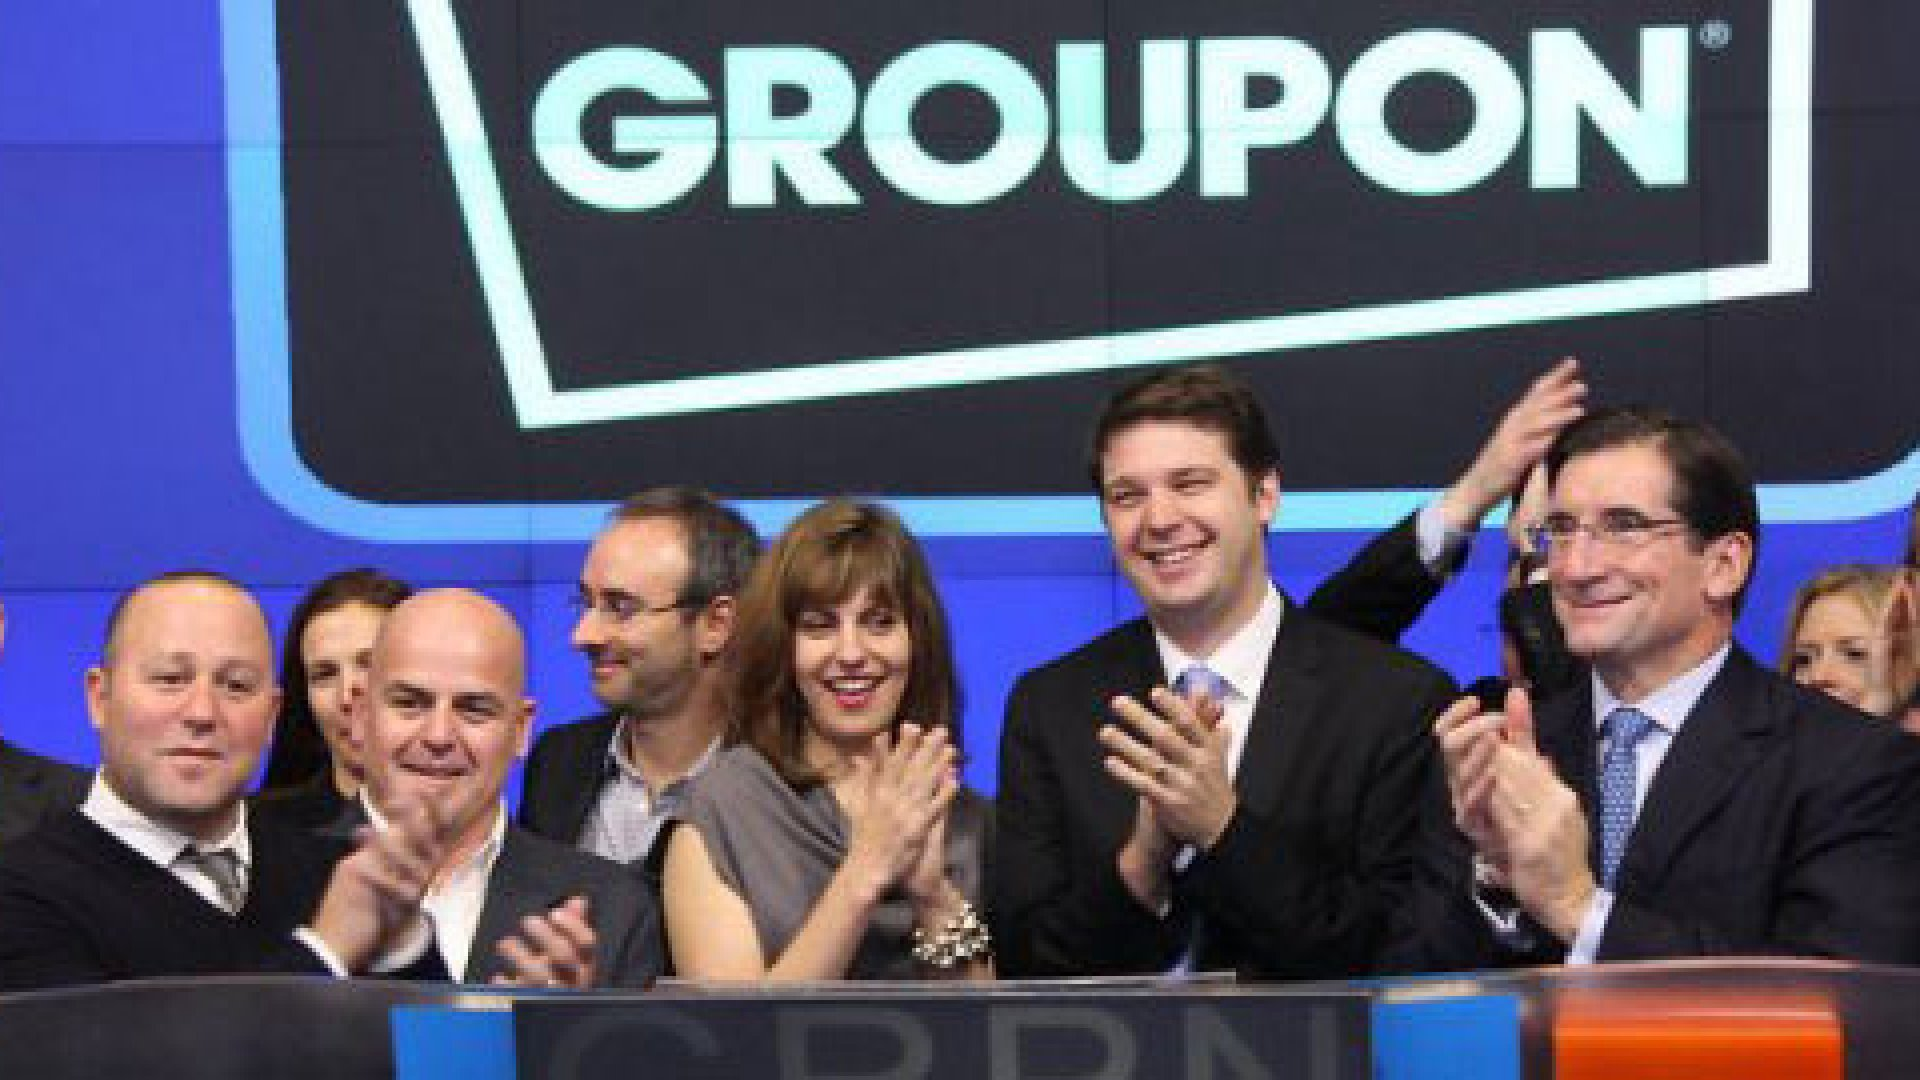 Groupon to Lay Off 1,100 Employees